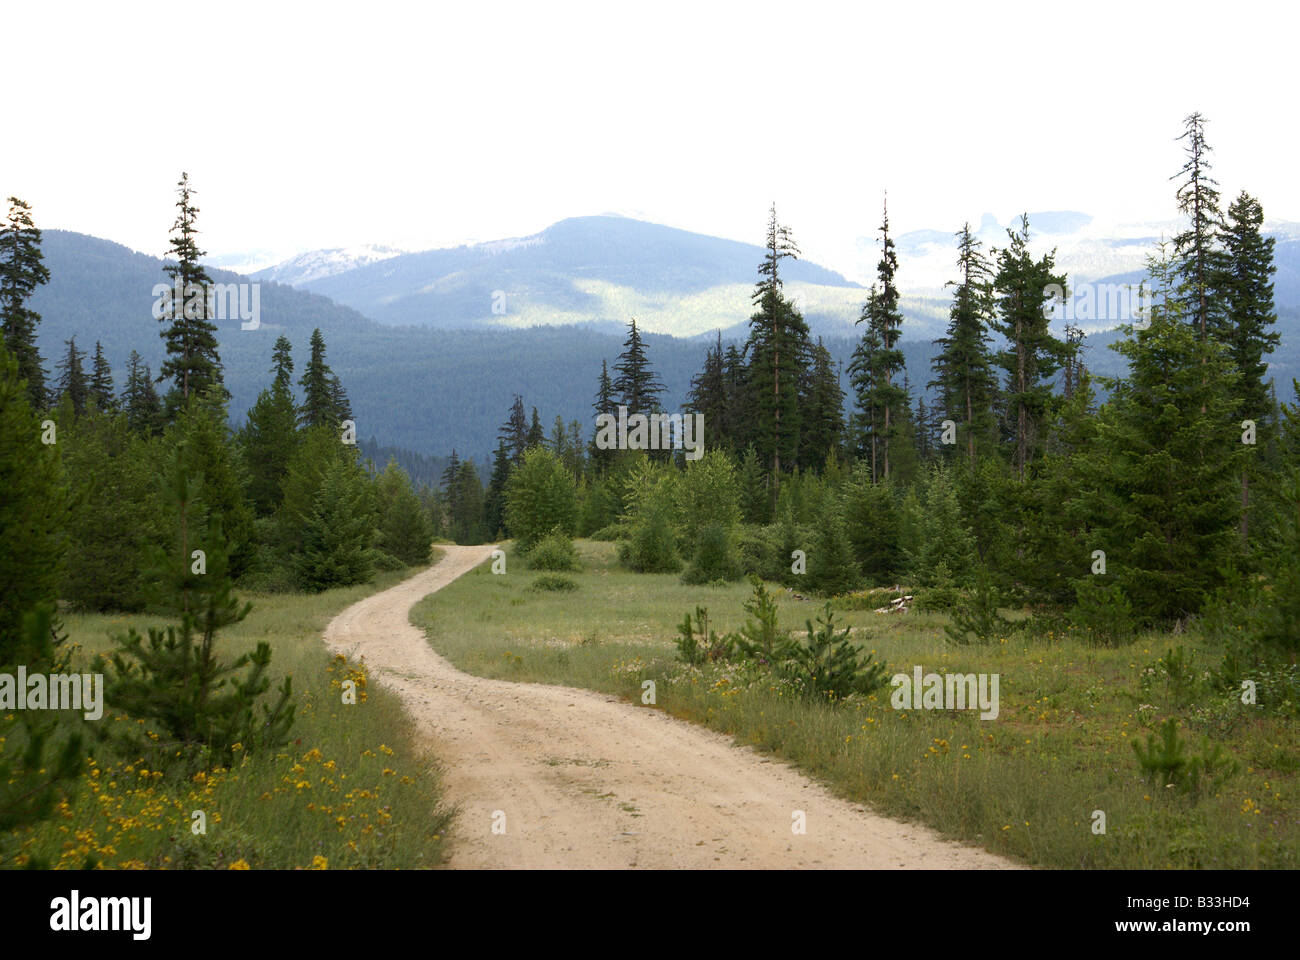 Winding dirt road leading nowhere amidst backdrop of mountains surrounded by meadows and evergreen trees - Stock Image